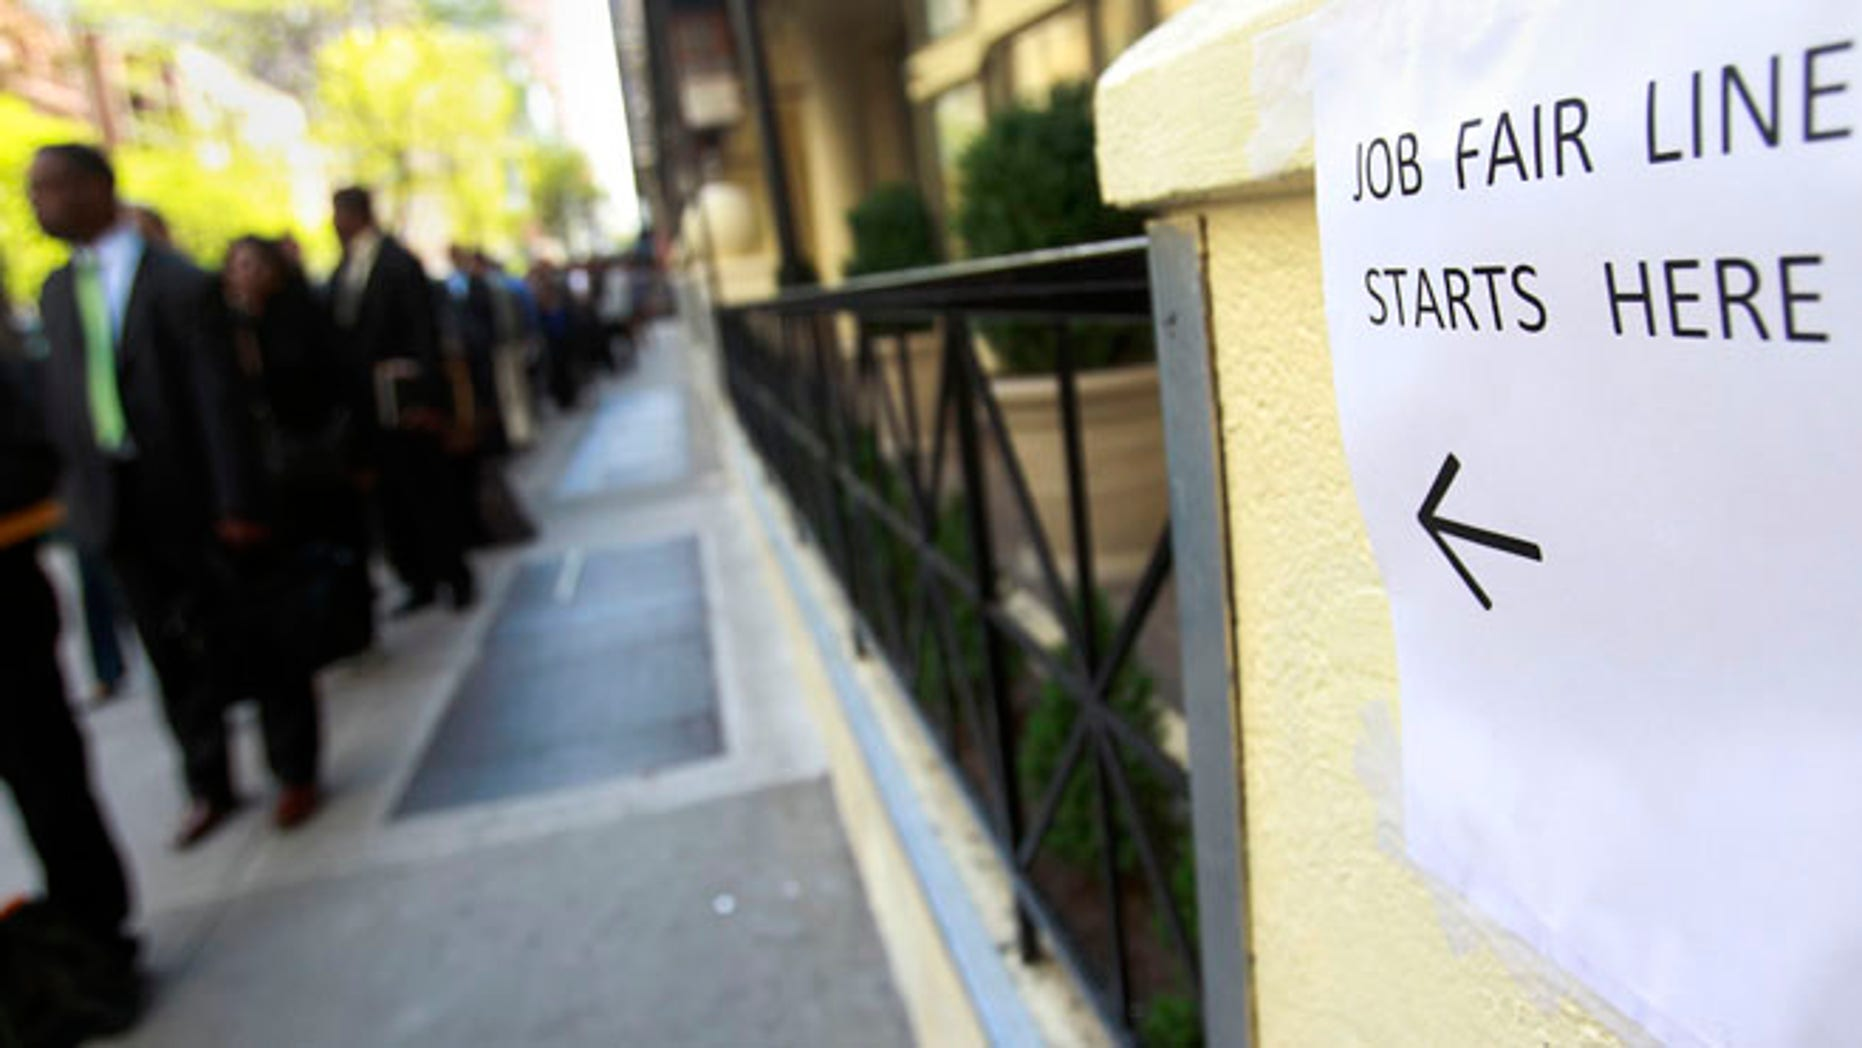 April 18, 2012: People wait in line to enter a job fair in New York.